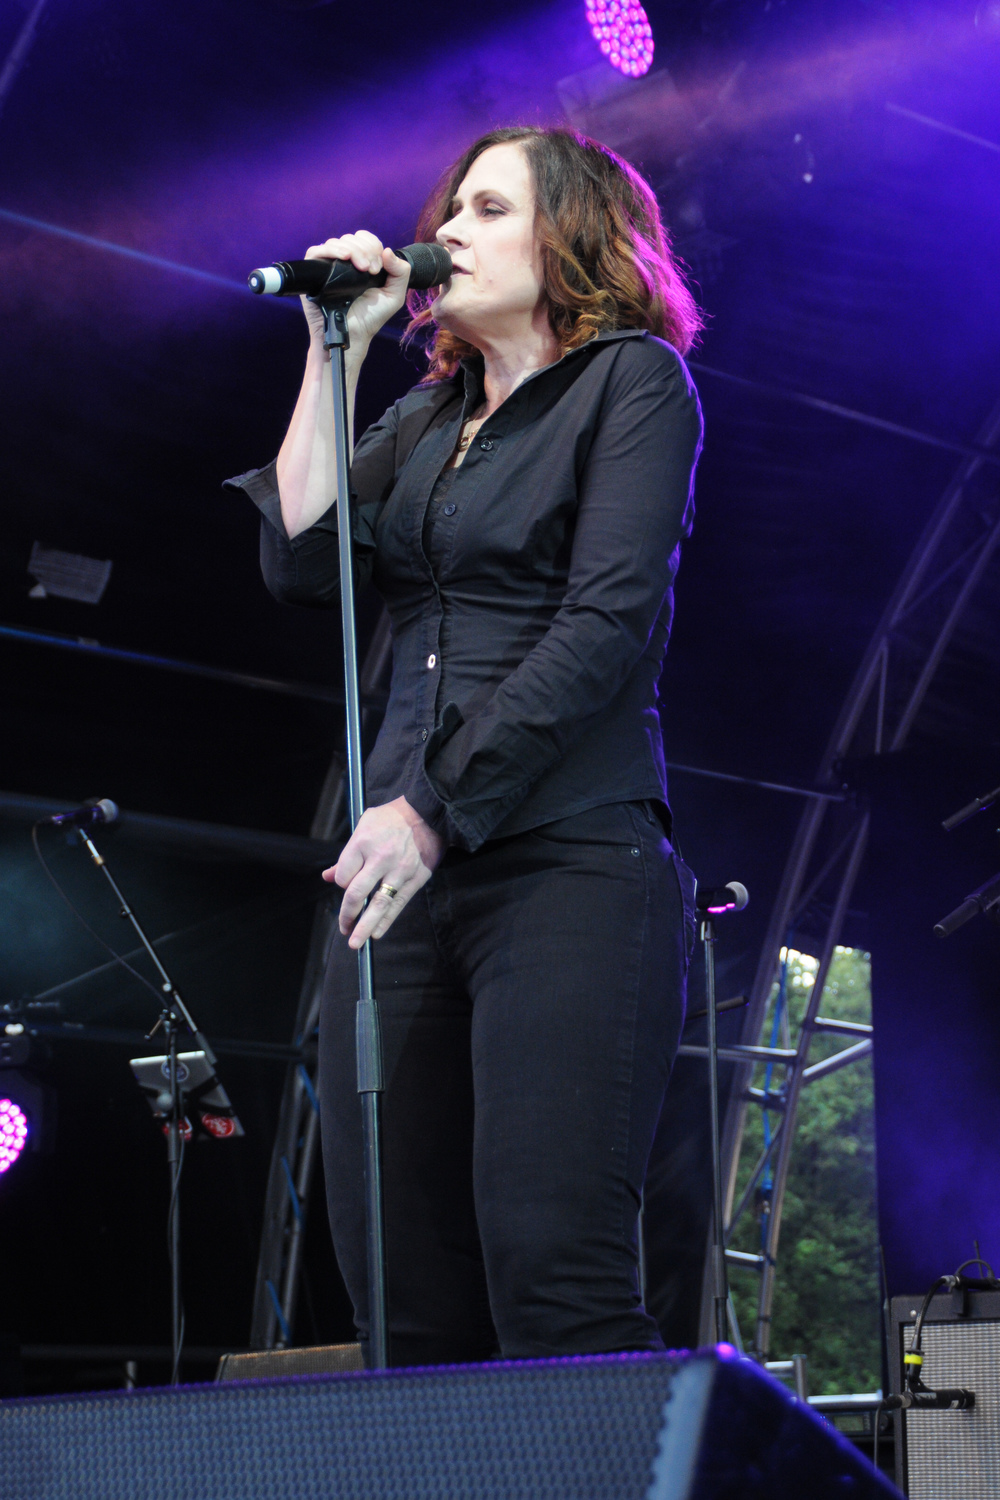 Alison Moyet performs with Nile Rogers at the Fold Festival in London's Fulham Palace